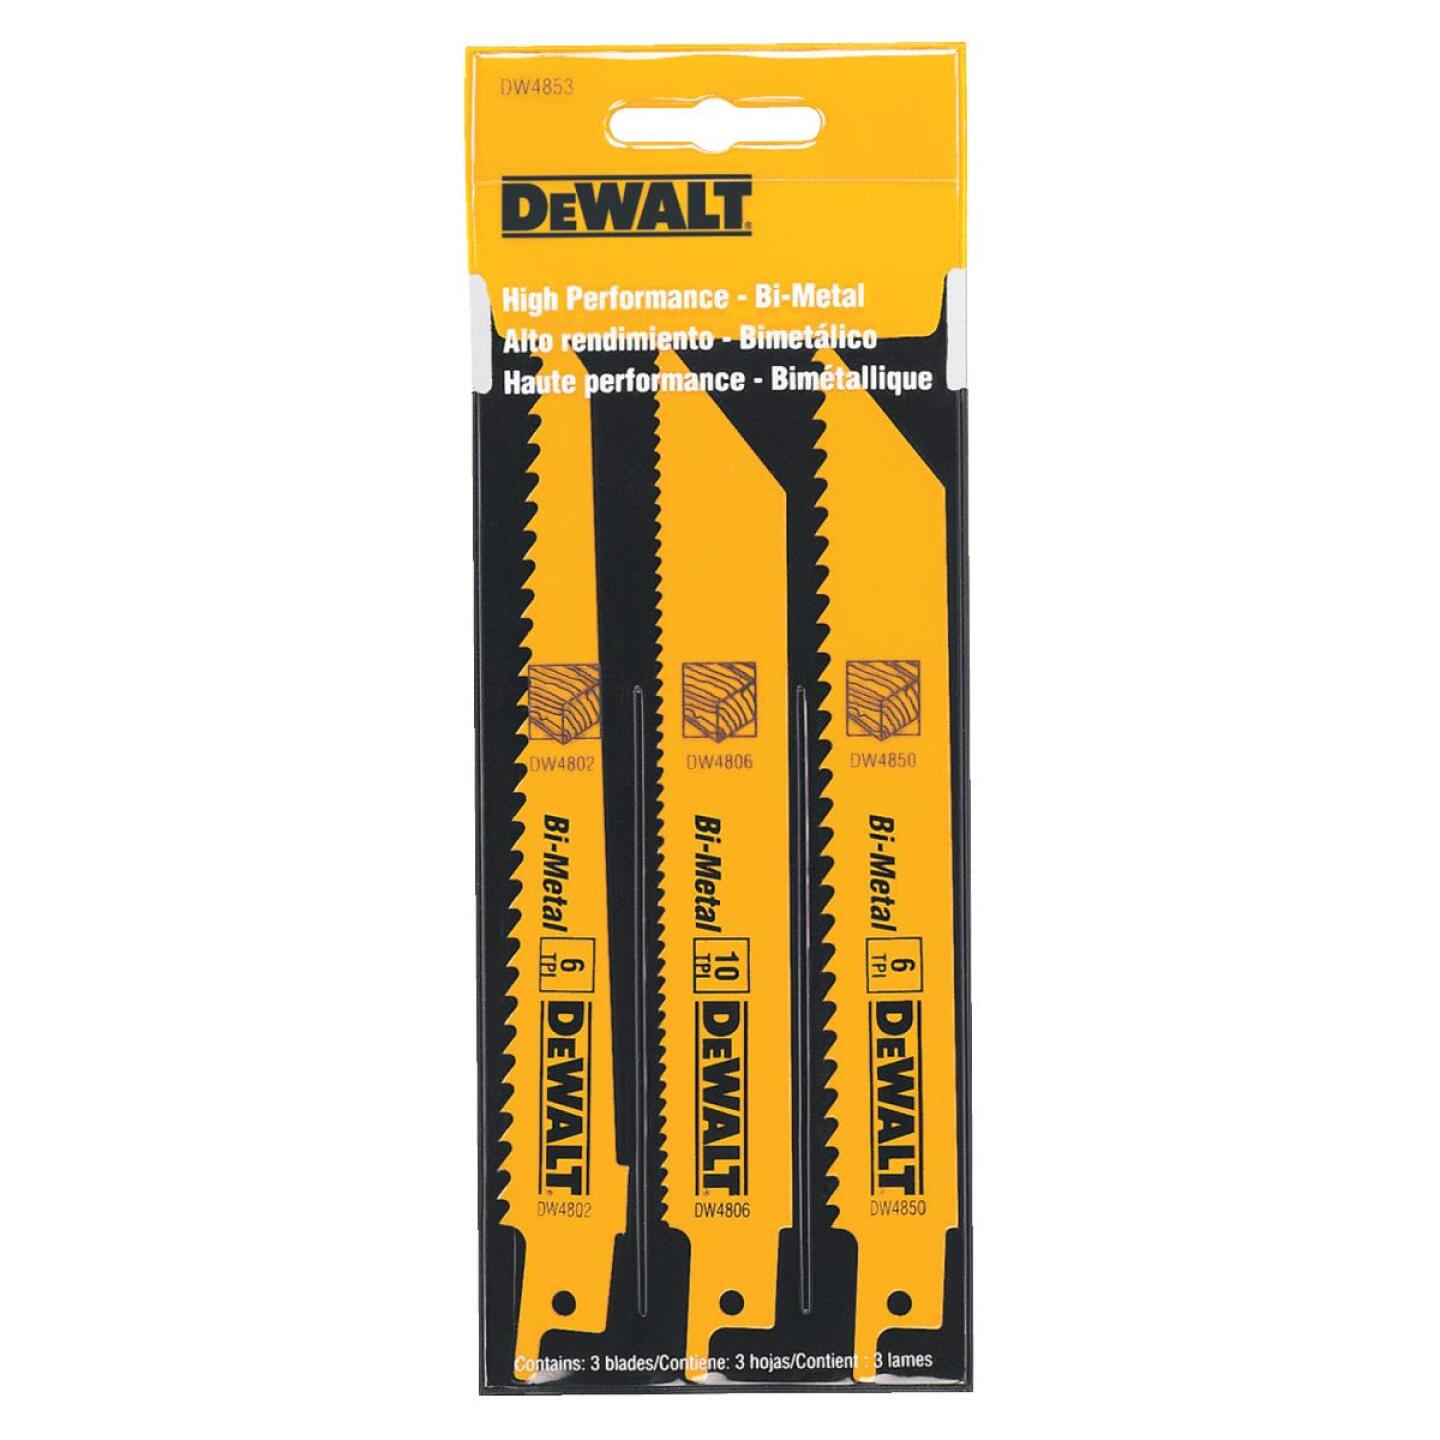 DeWalt 3-Piece Reciprocating Saw Blade Set Image 1